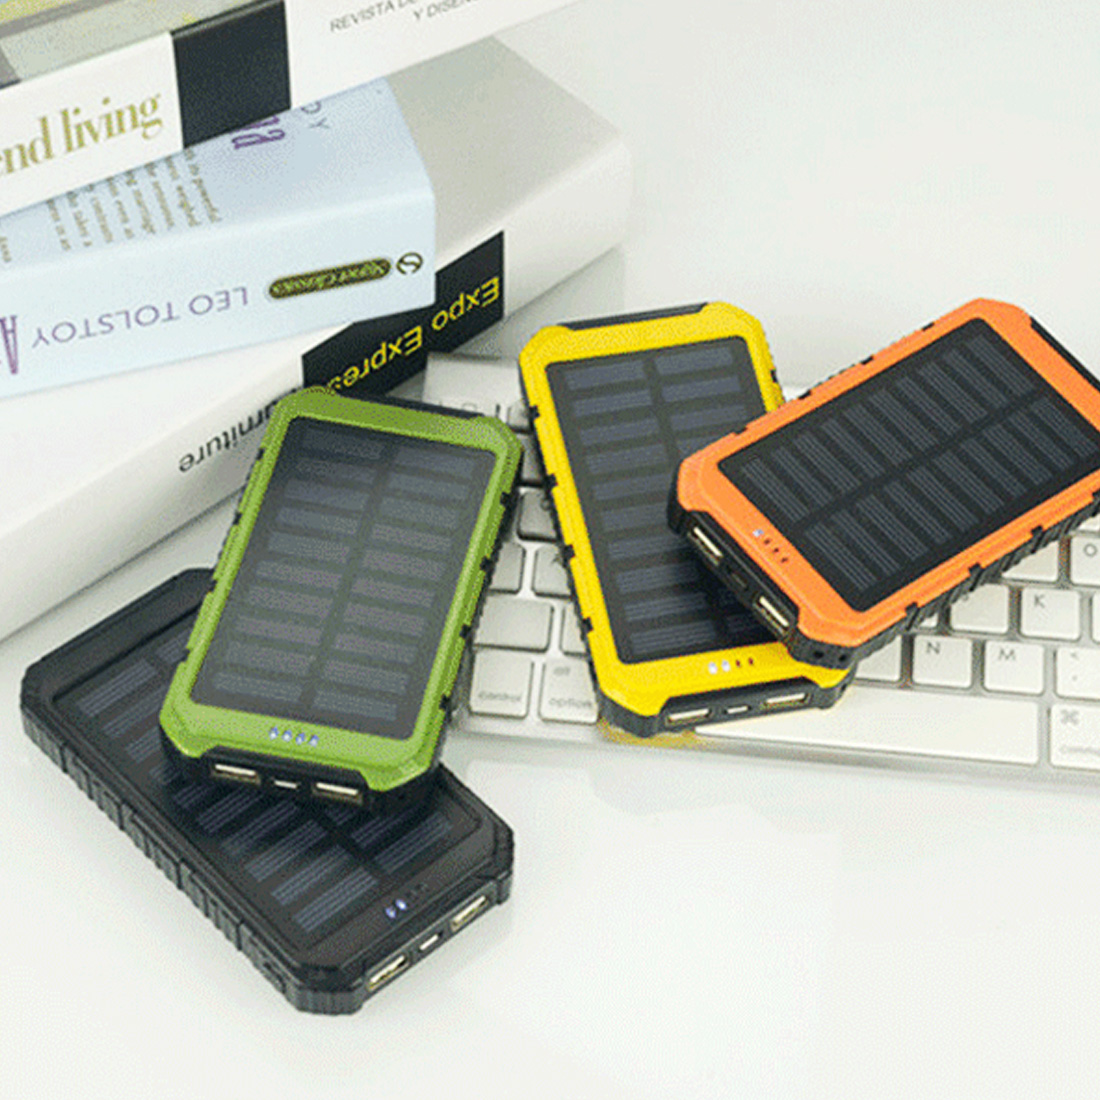 Solar Panel Sun power Battery Power Bank 20000mAh large Capacity Charger Universal Portable Solar Mobile Phone Power Charger power bank romoss sense 4p mobile 10400 mah solar power bank externa bateria portable charger for phone